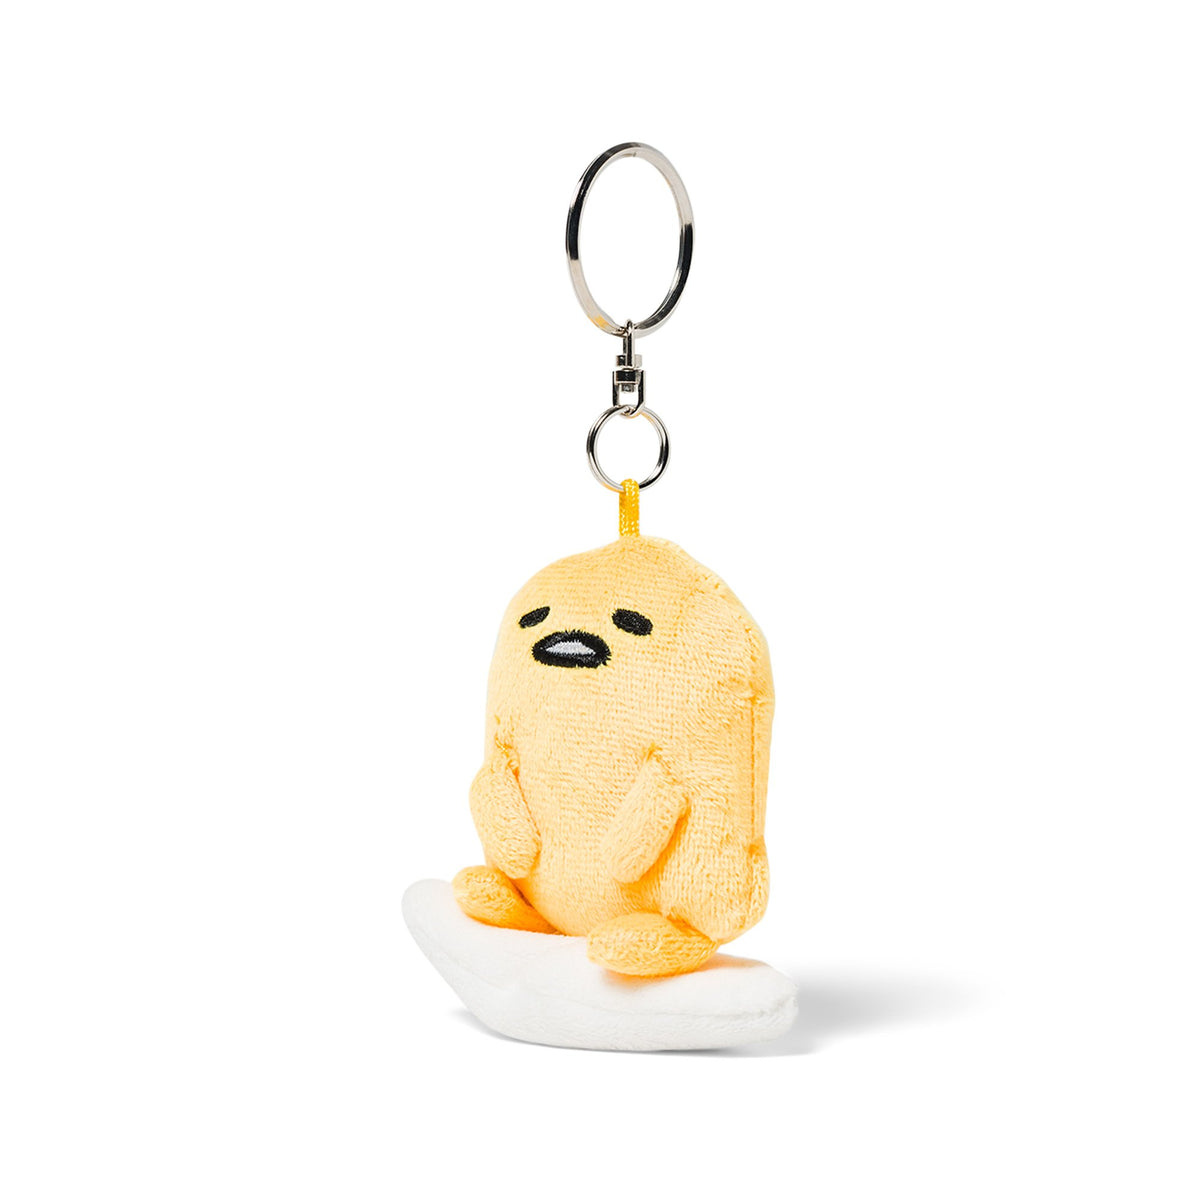 Gudetama Mascot Plush Measuring Tape